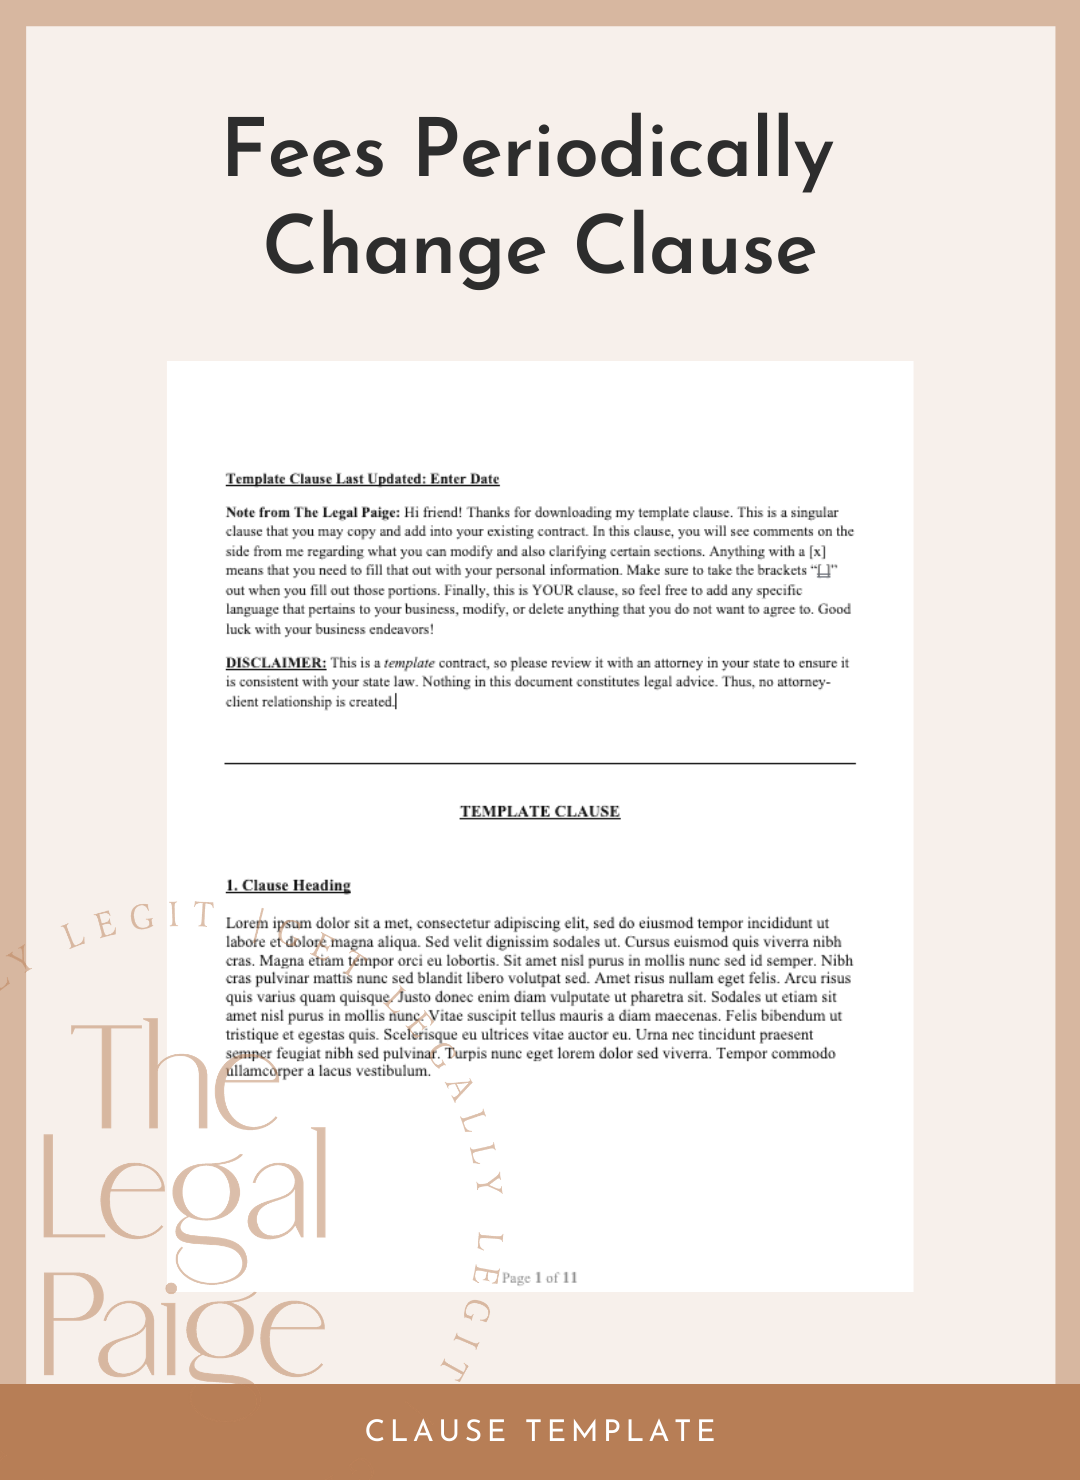 Fees Periodically Change Clause